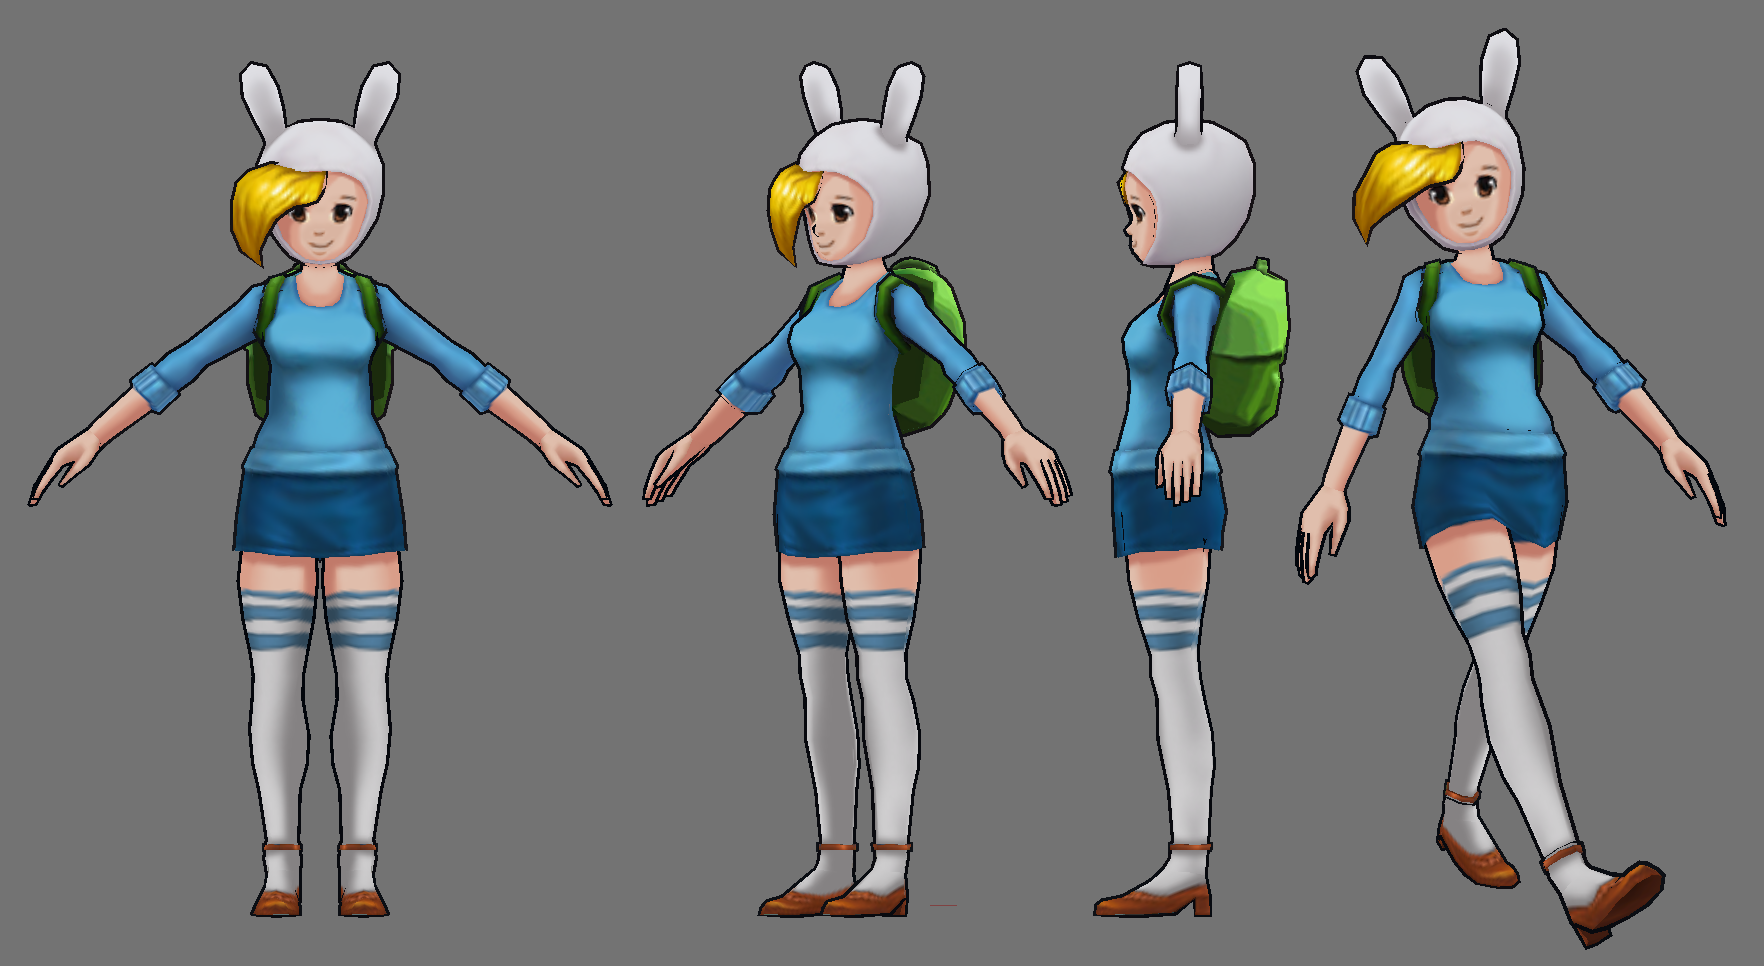 Fionna Model By FusionFallCreations On DeviantArt